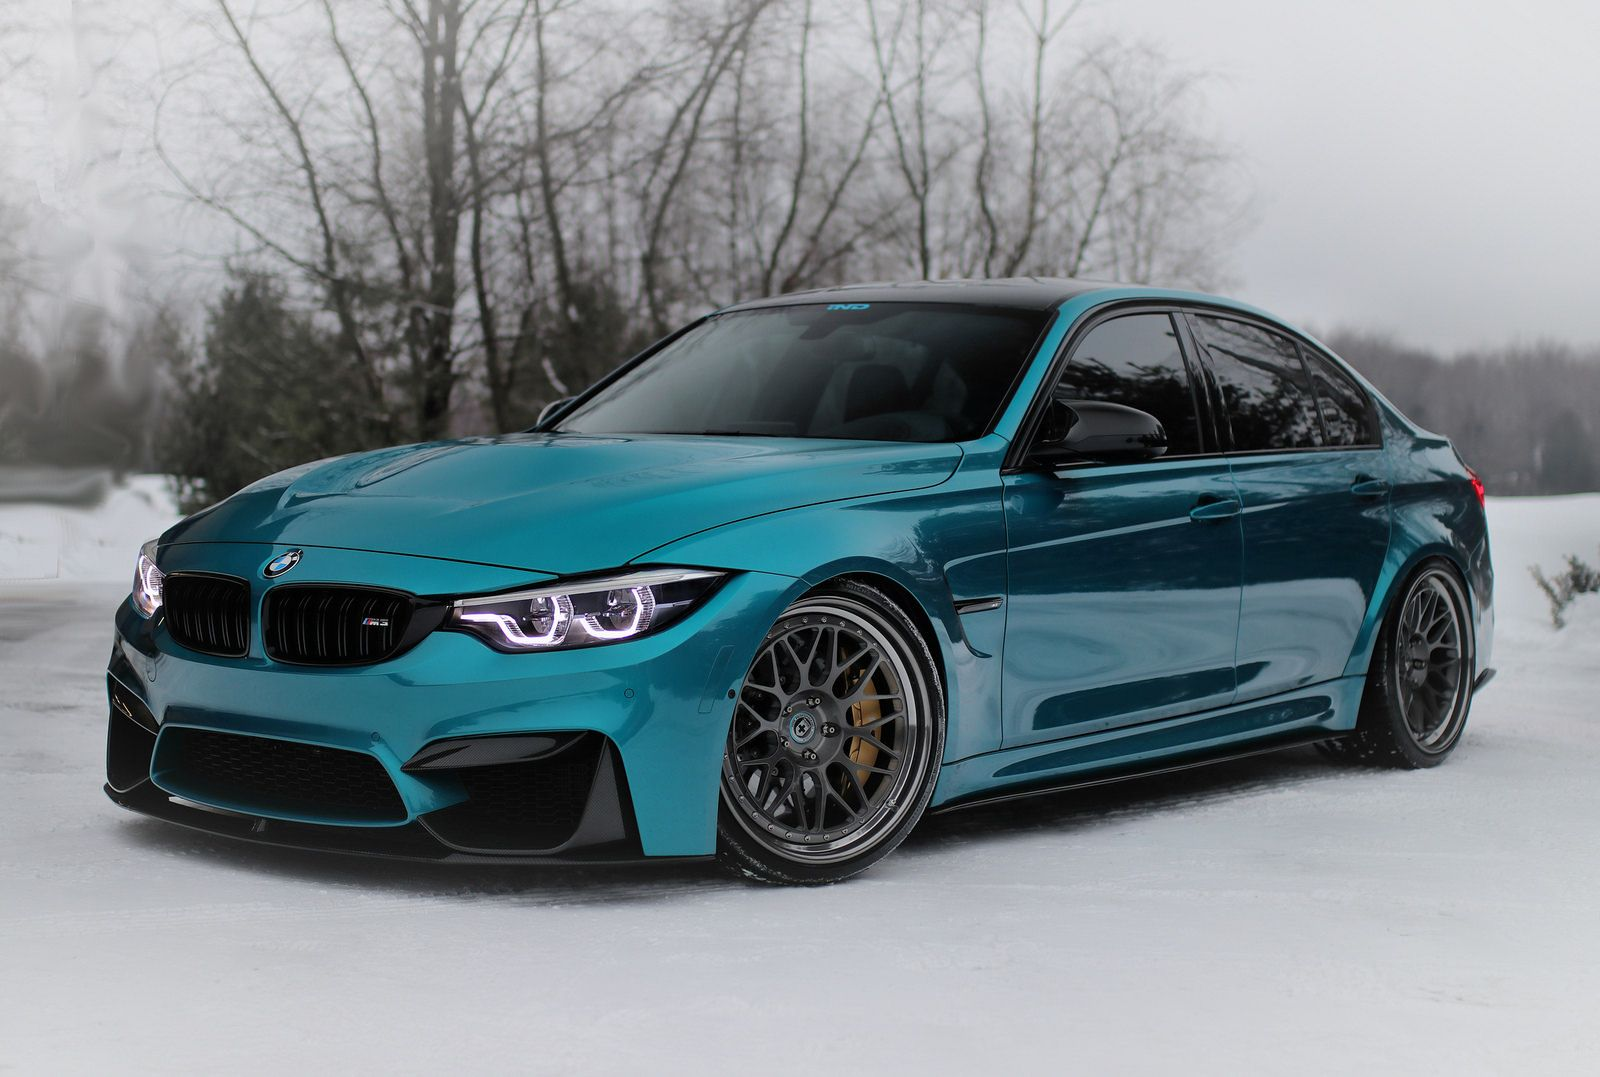 Bmw M3 With Subtle Mods Shines In Atlantis Blue Paintjob Bmw